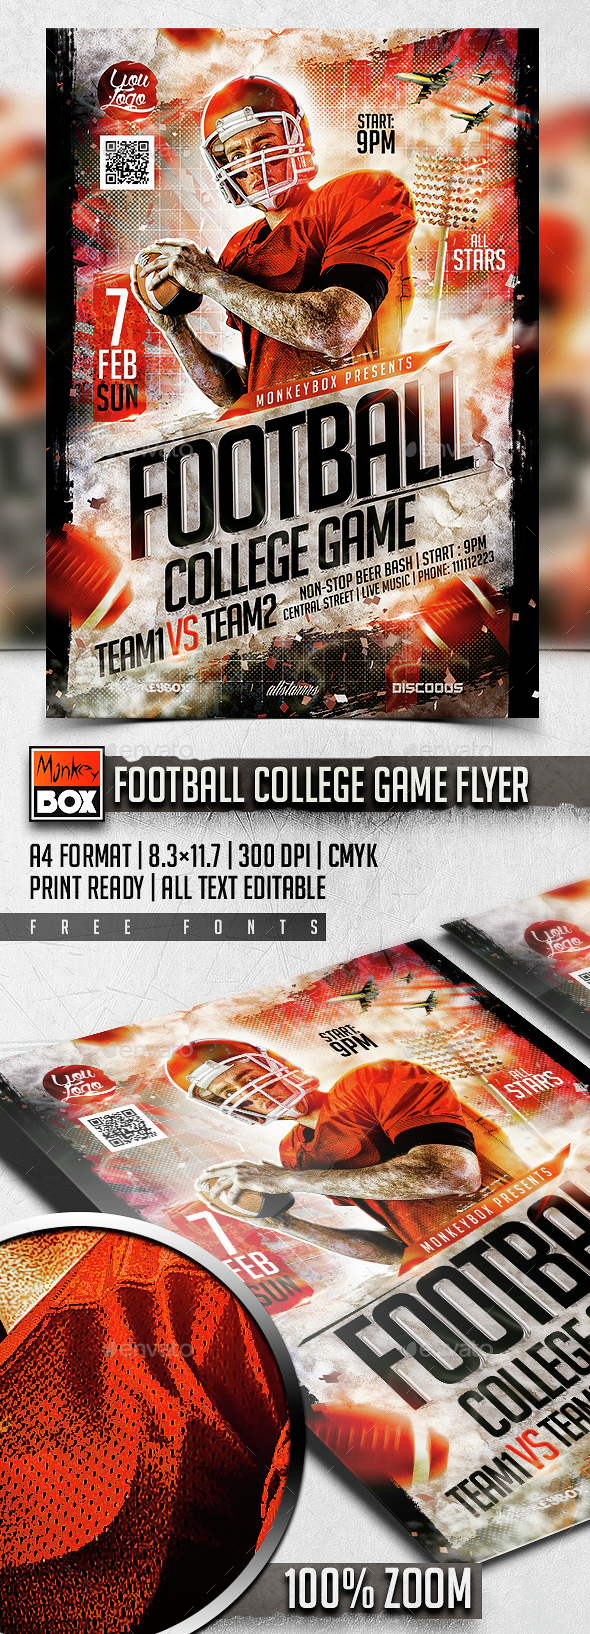 Football College Game Flyer - Flyers Print Templates